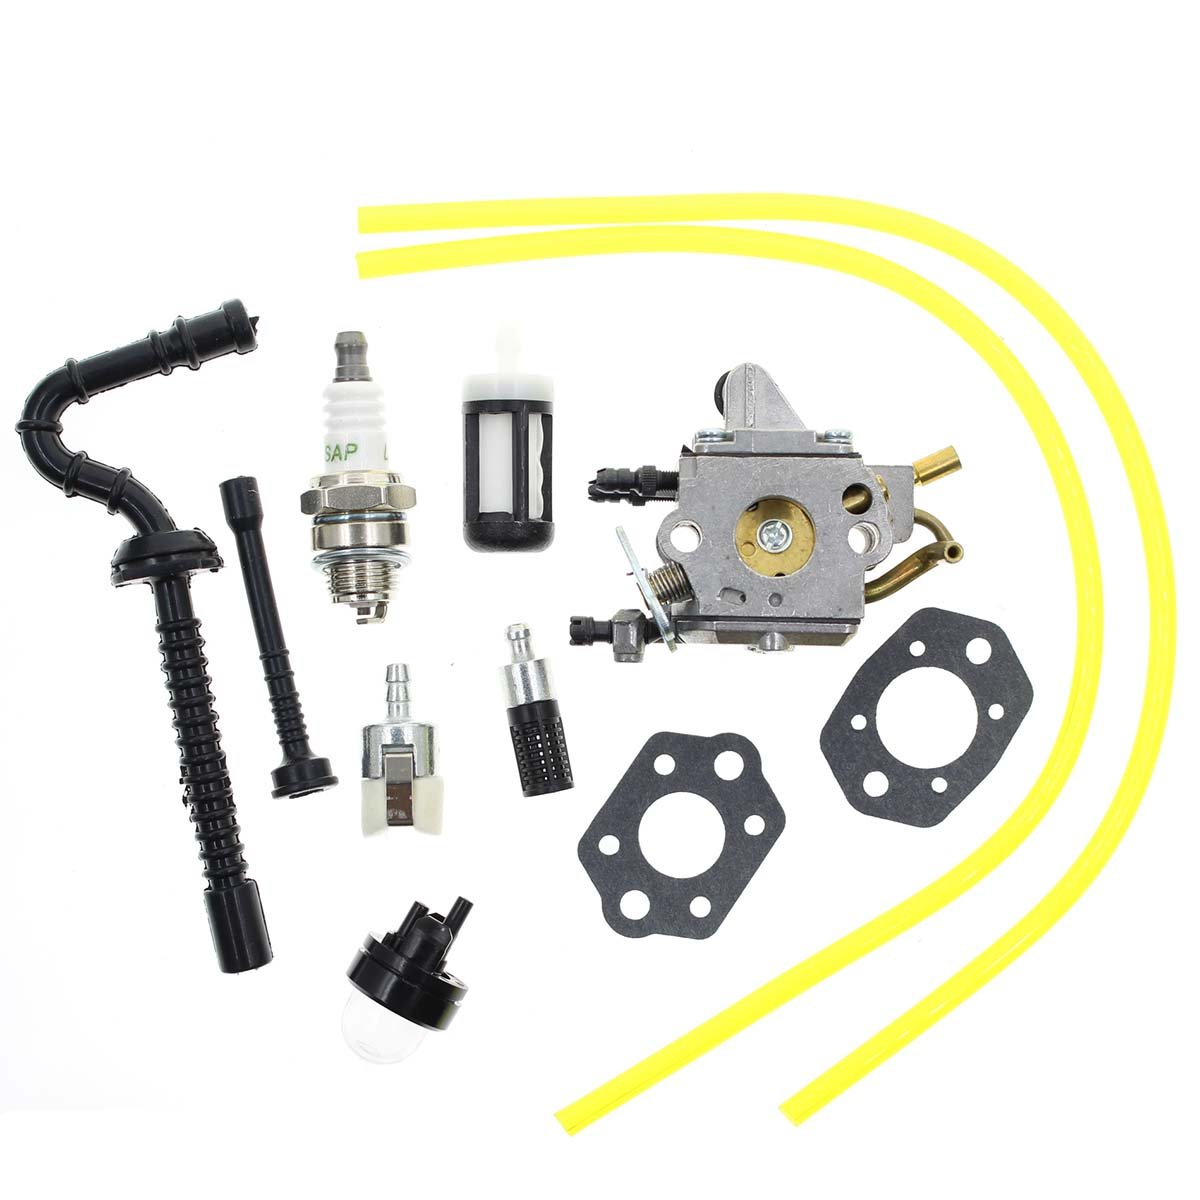 Carbhub C1Q-S258 Carburetor for Stihl MS192 MS192T MS192TC Chainsaw Carb Replace Zama C1Q-S258 1137-120-0650 with Fuel Line Filter Spark plug Tune-up Kits by Carbhub